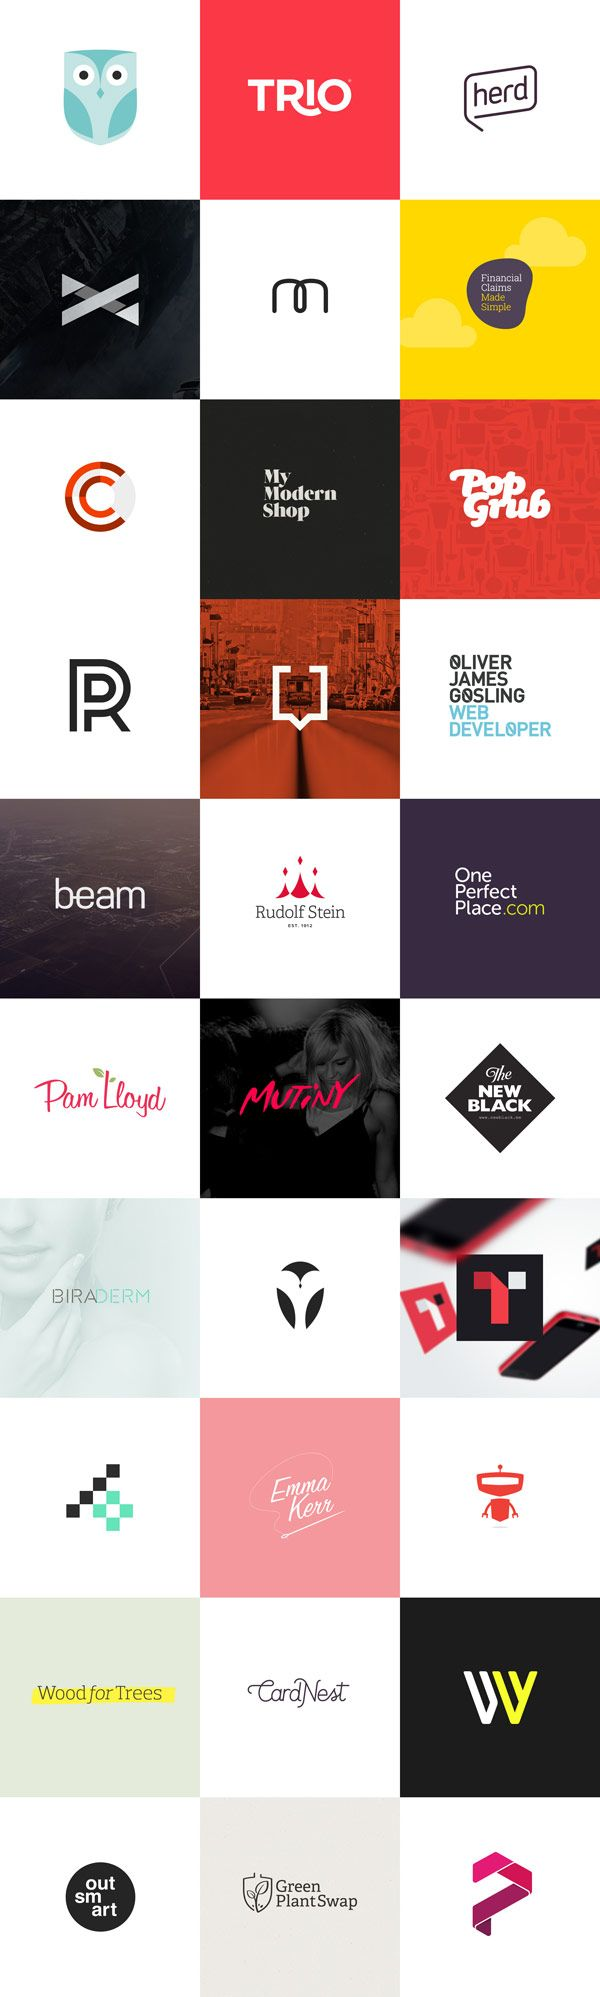 30 Logos by Hype & Slippers #logos #logo #design #branding #identity #inspiration #brand #idea #modern #creative #simple #flat